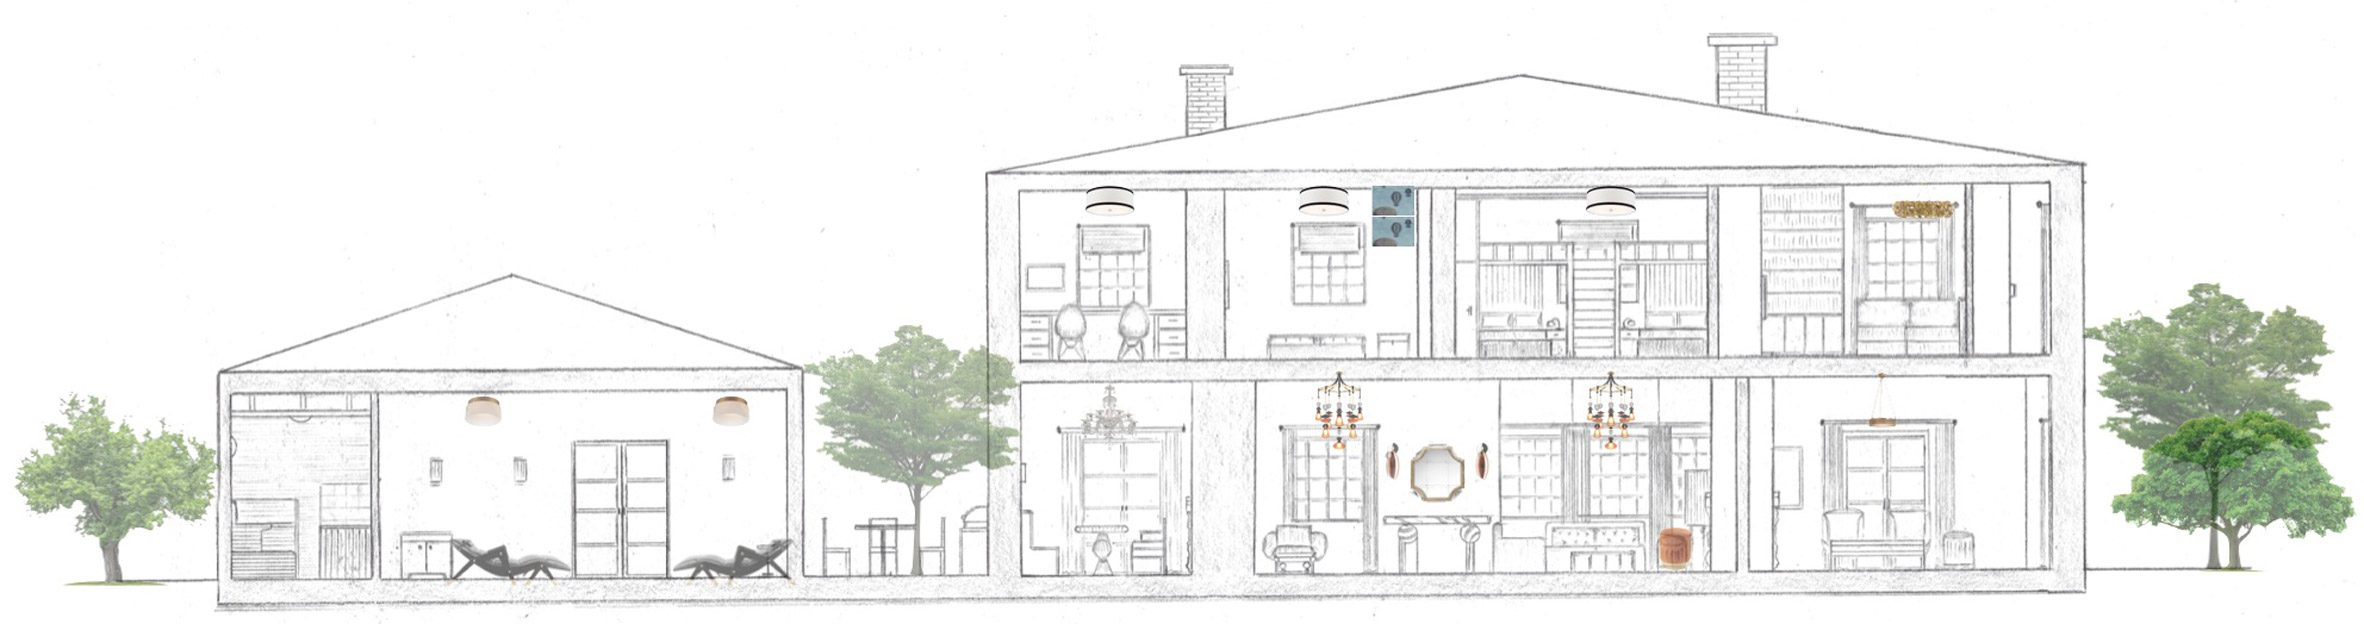 An illustration of a house